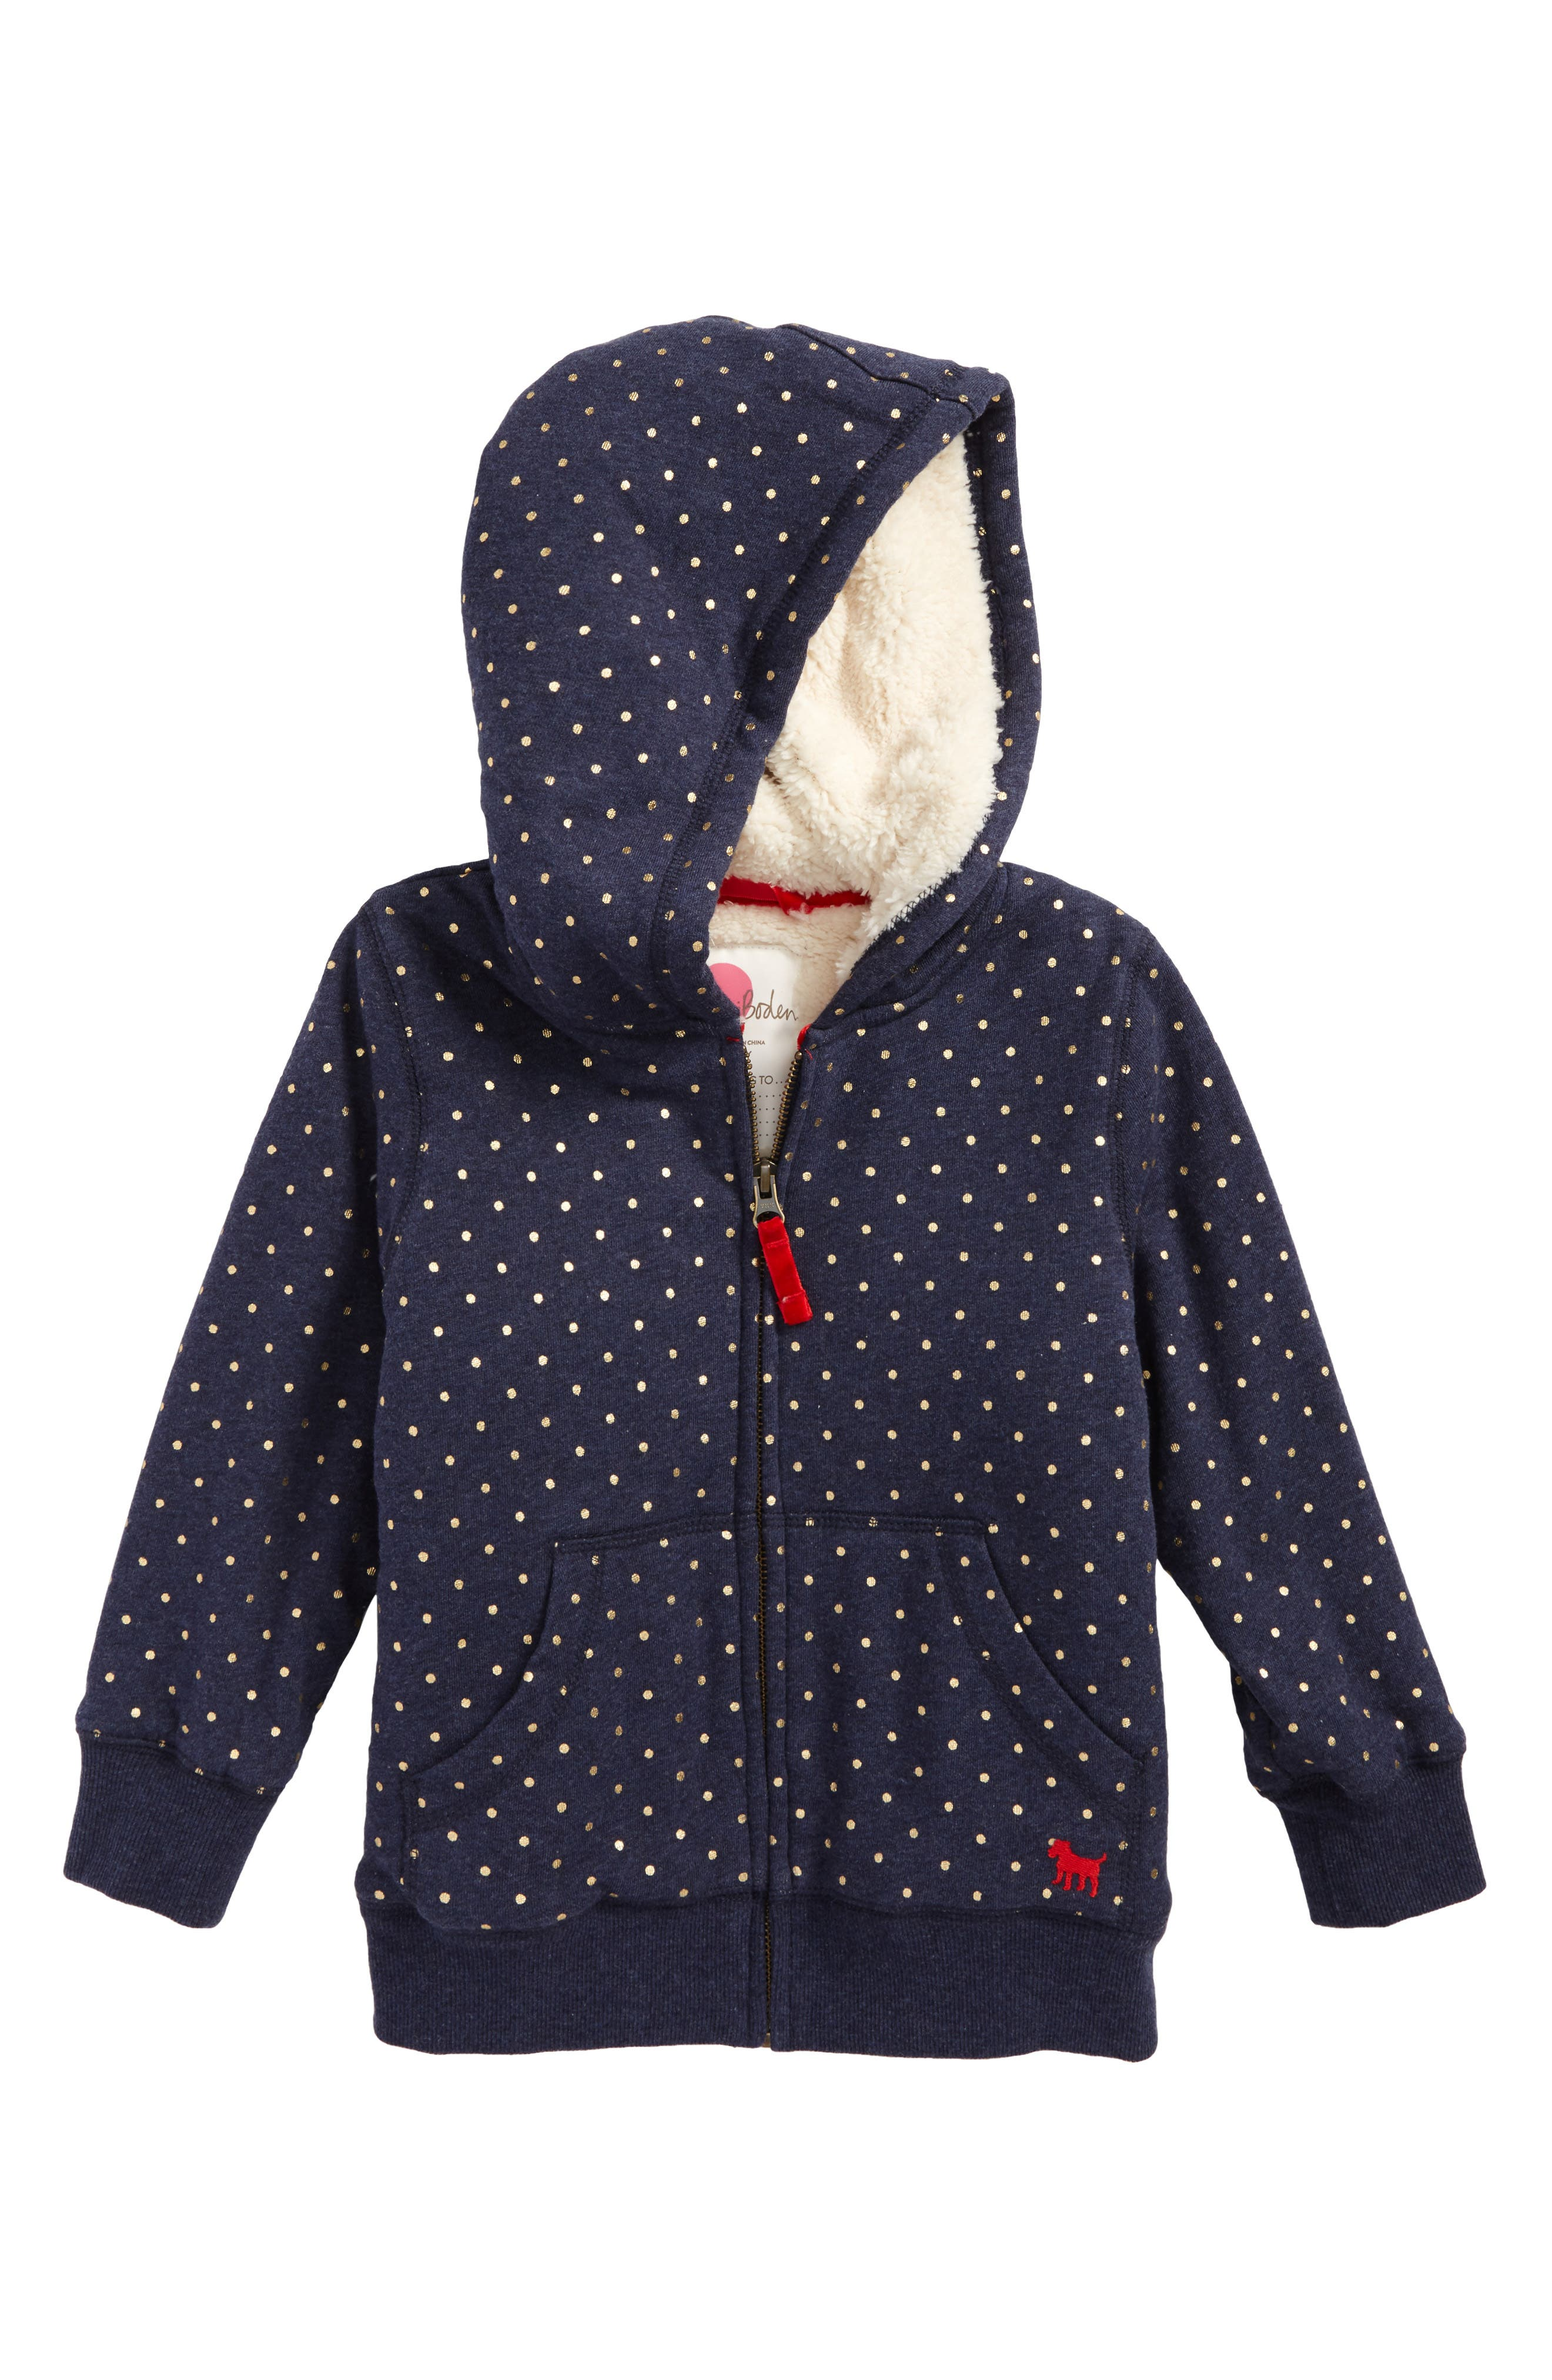 Boden Print Shaggy Lined Hoodie,                             Main thumbnail 1, color,                             414